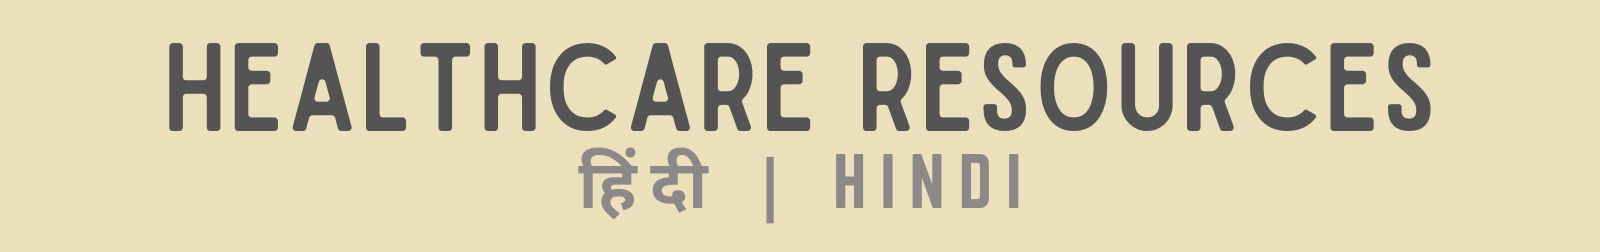 Healthcare Resources in Hindi